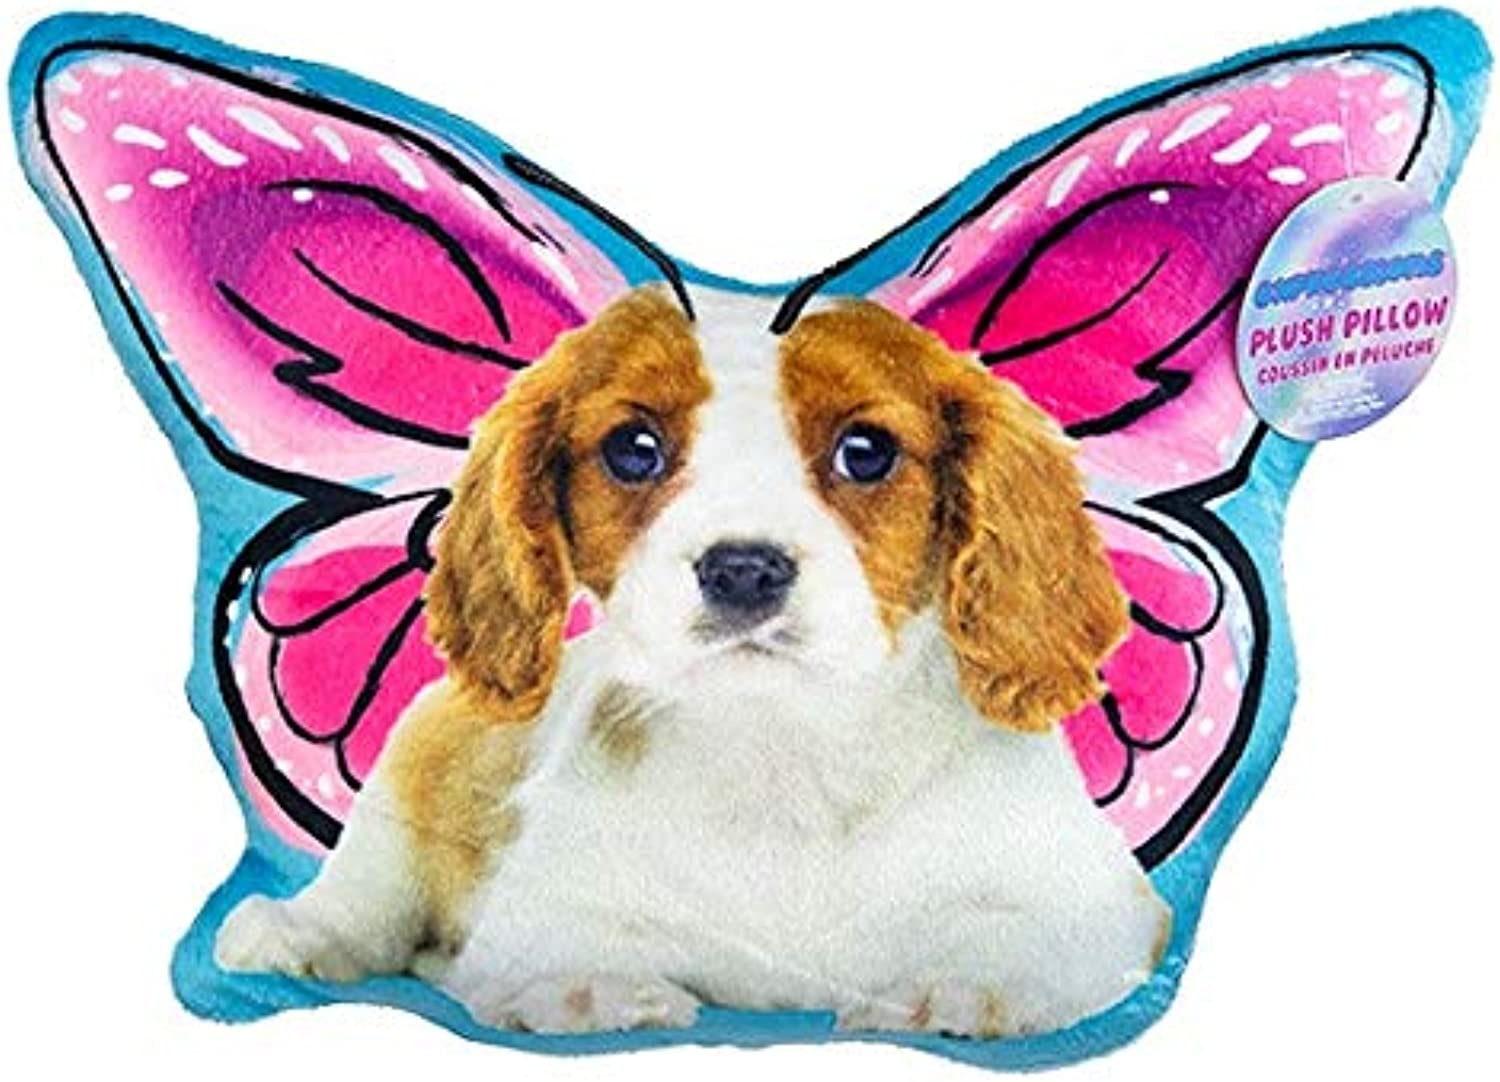 Expressions Soft Cuddly Novelty Butterfly Dog Throw Pillows Fun for Girls Boys Tweens Teens Kids (PupperFly)